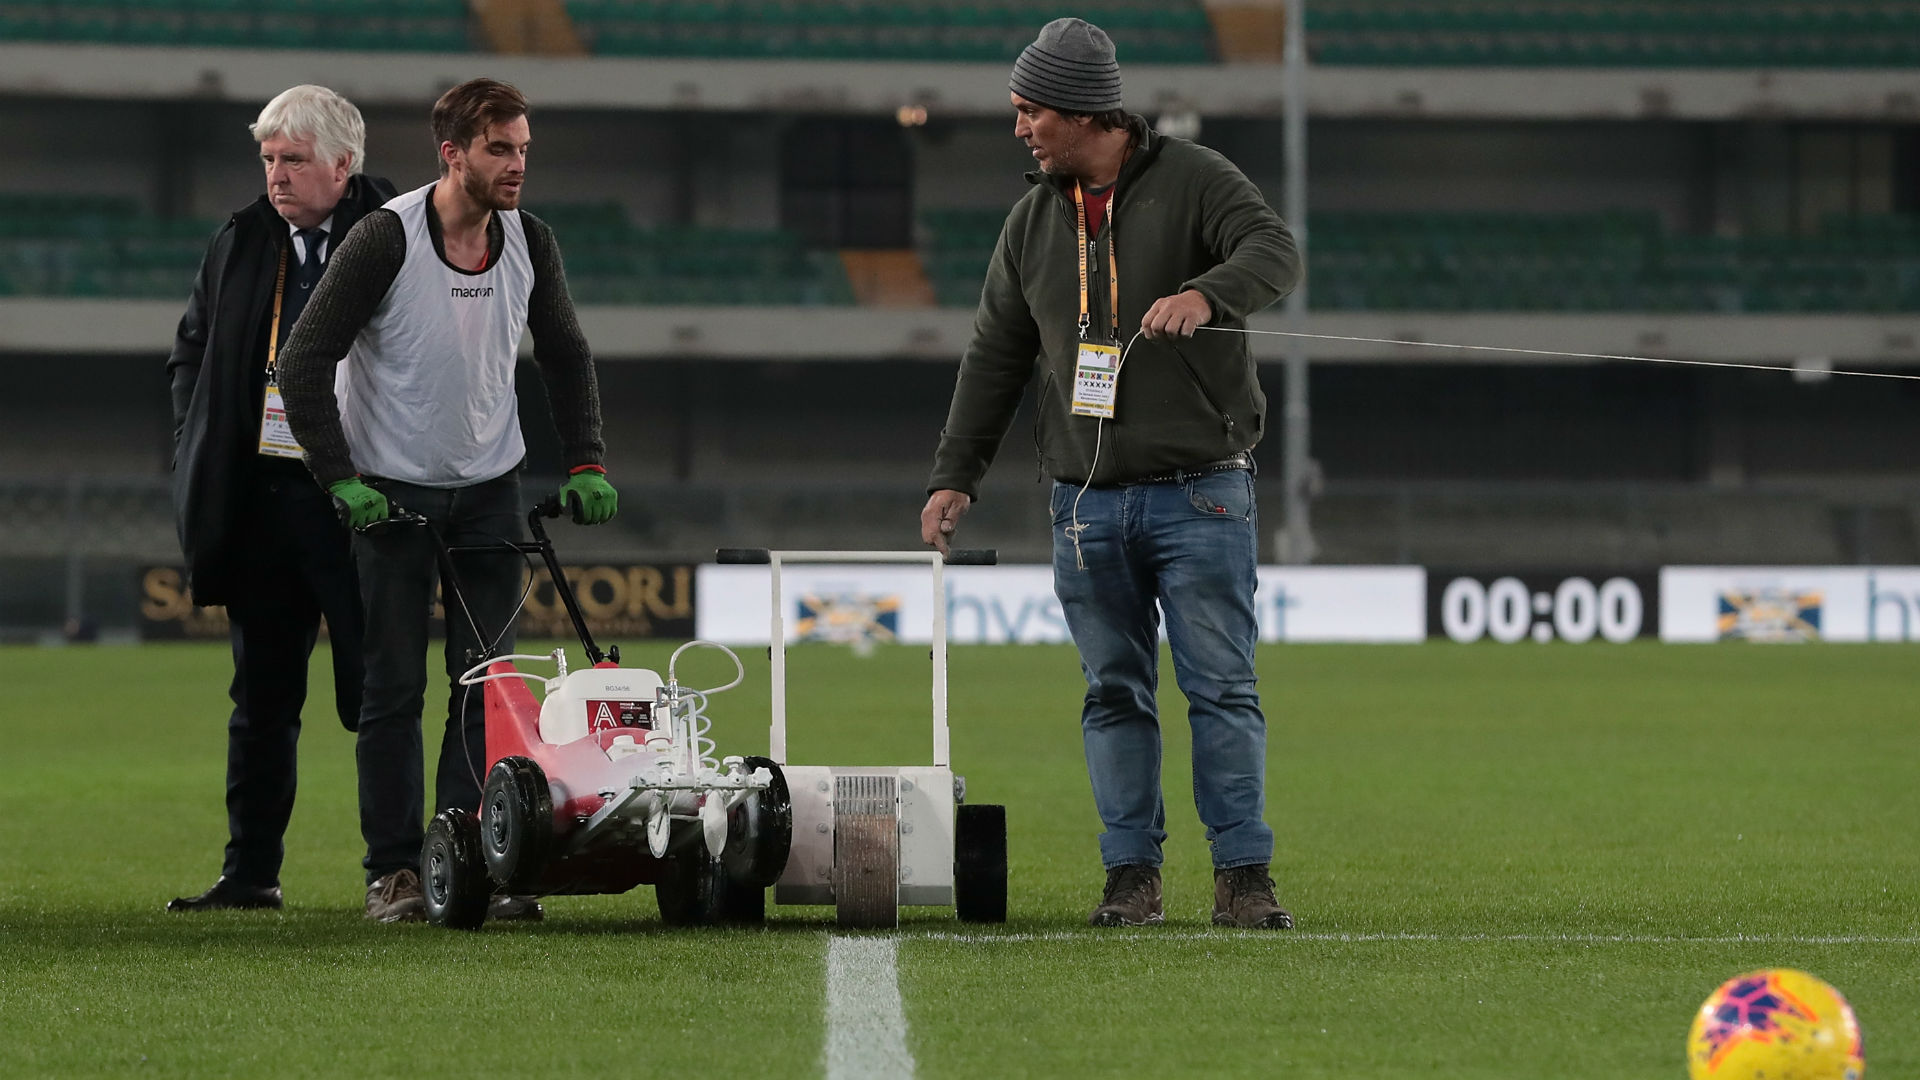 The Serie A clash between Hellas Verona and Genoa was pushed back as groundstaff were called into action for a painting job.